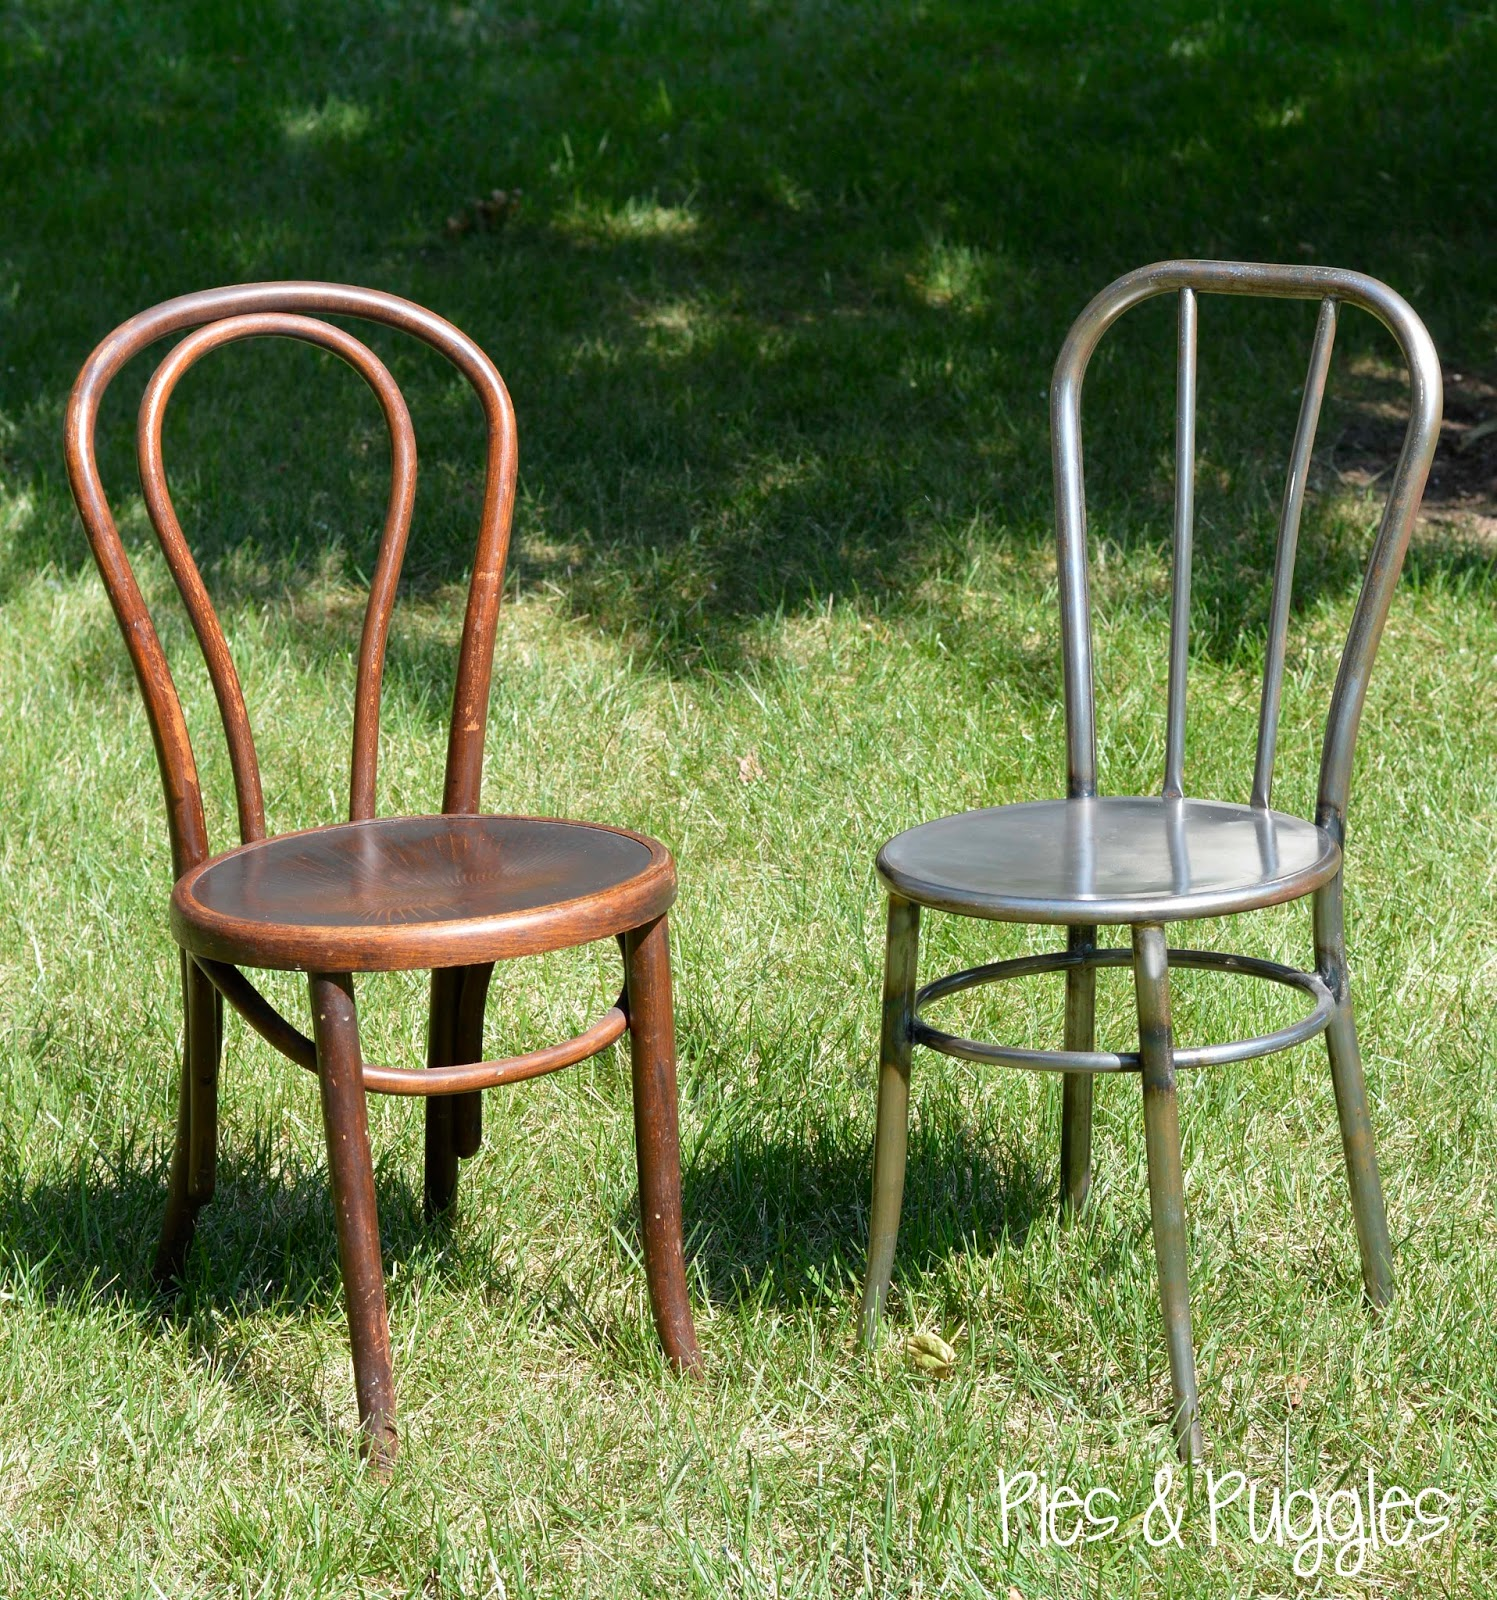 Diy Painted Windsor Chairs Ergonomic Chair Chennai Pies And Puggles Bentwood Monday August 26 2013